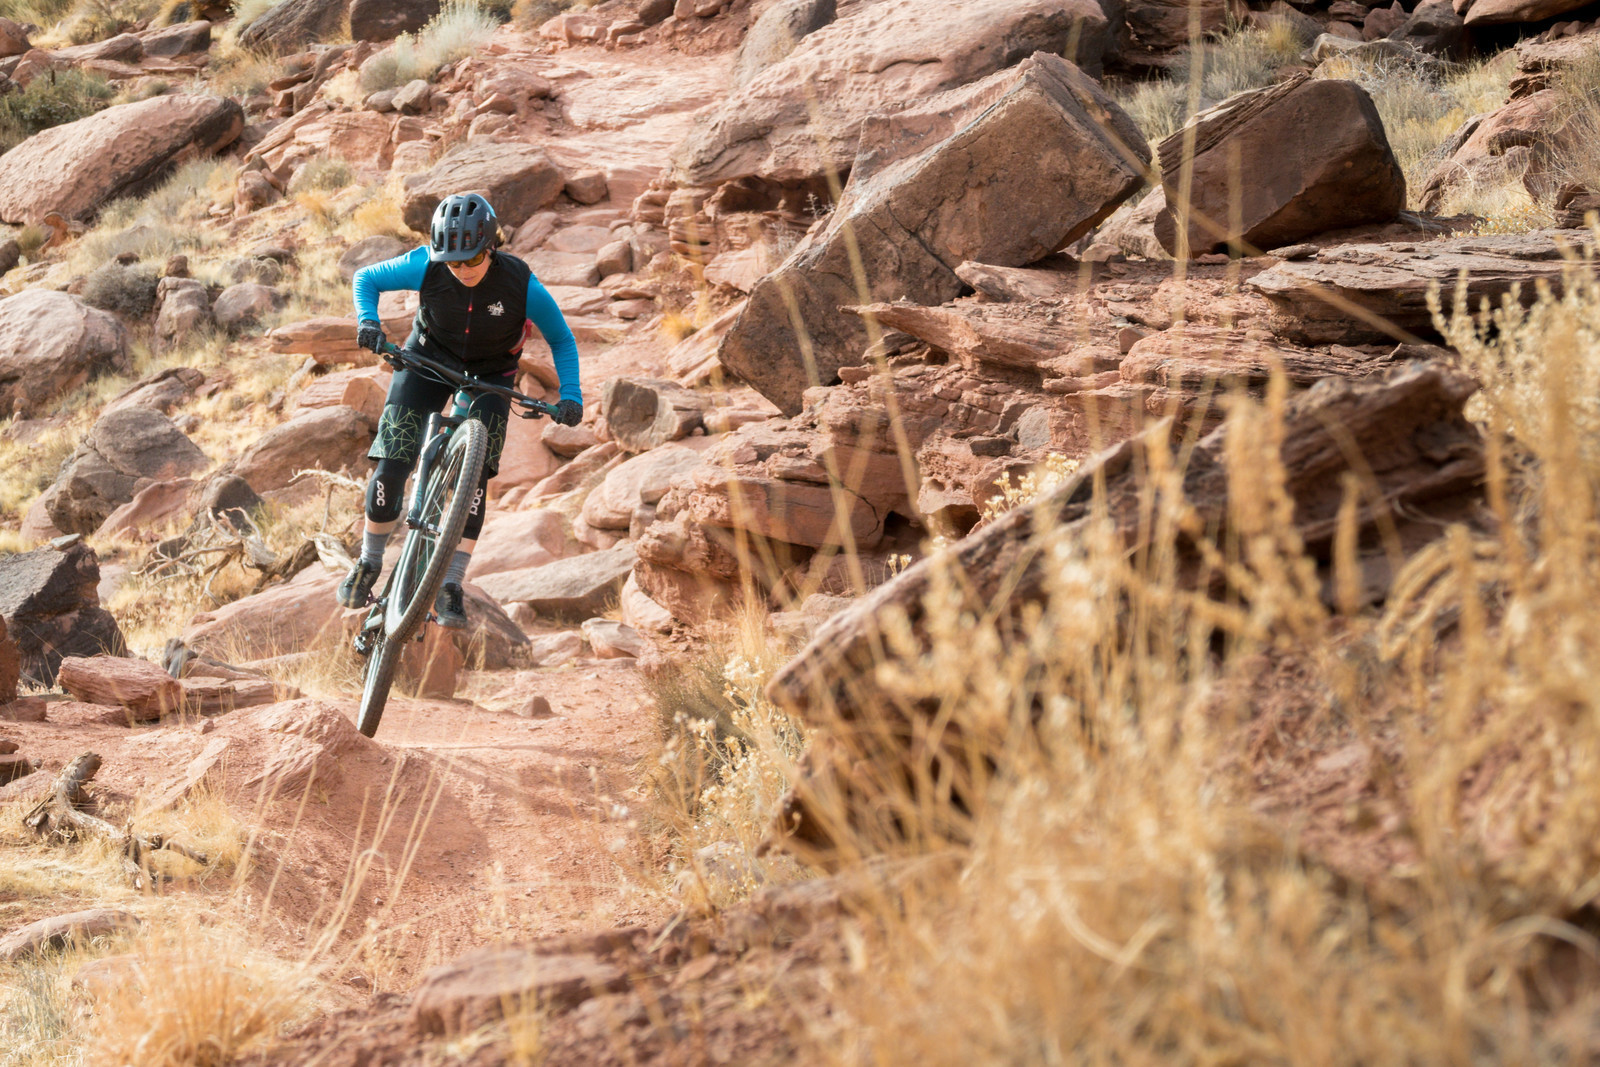 Courtney Steen, mobbing Moab for a Juliana Joplin review and the reason the Vital MTB product guide has over 20,000 bikes, parts and pieces of gear for you to check out. DIALED on and off the bike.